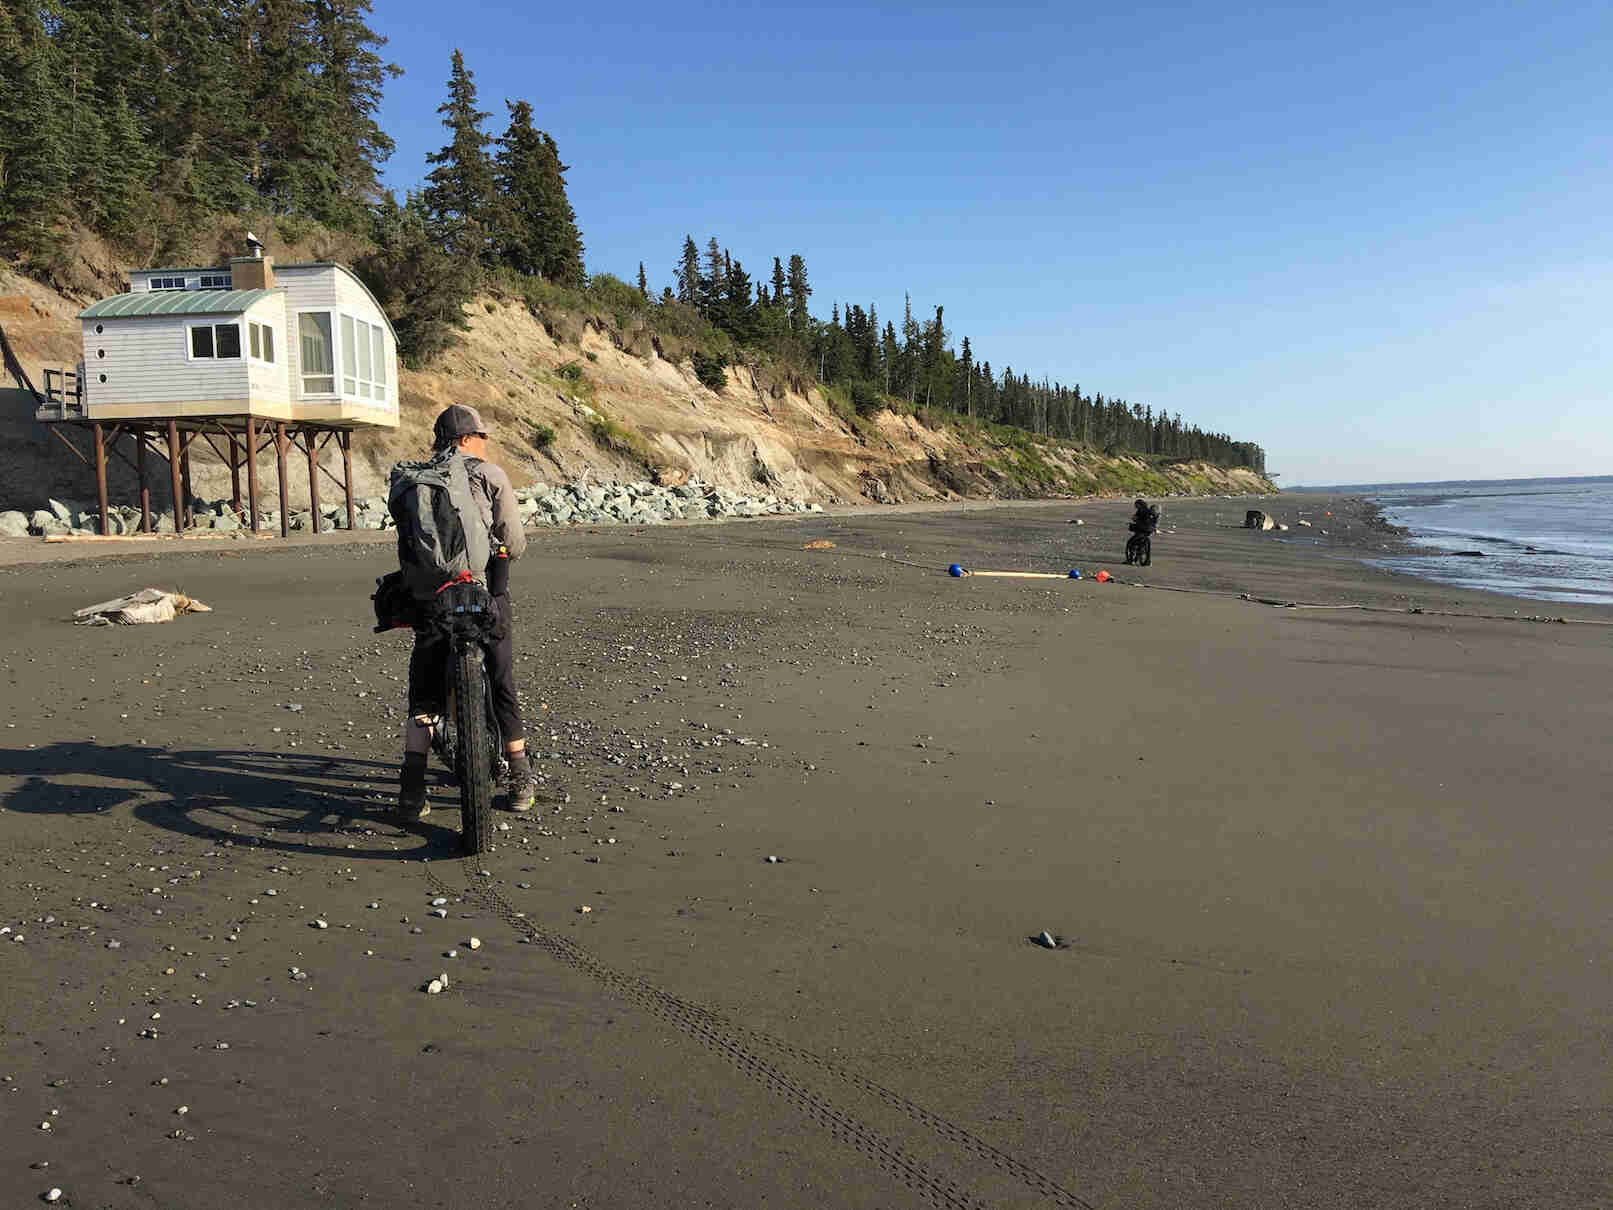 Rear view of a cyclist standing with their fat bike on a beach with water to the right, a building on stilts